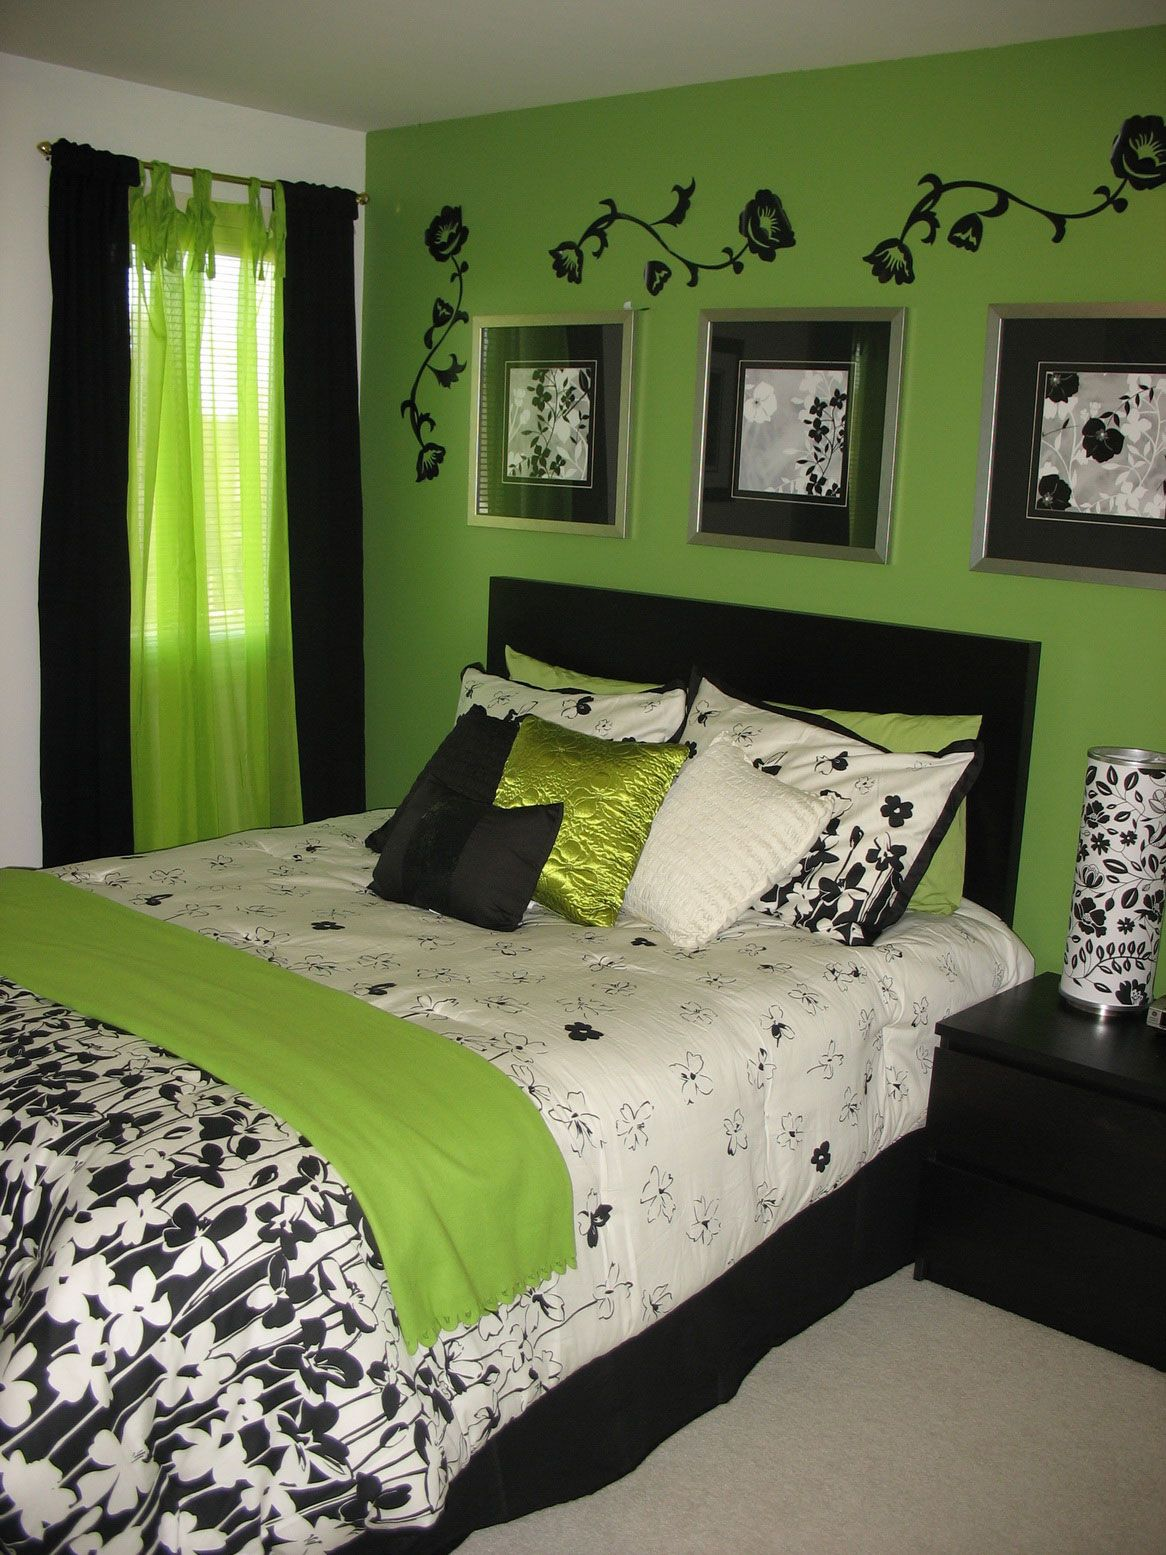 Green bedroom design for girls - Bedroom Captivating Decorating Ideas In Lime Green Bedrooms Interior Design Using White Comforter Platform